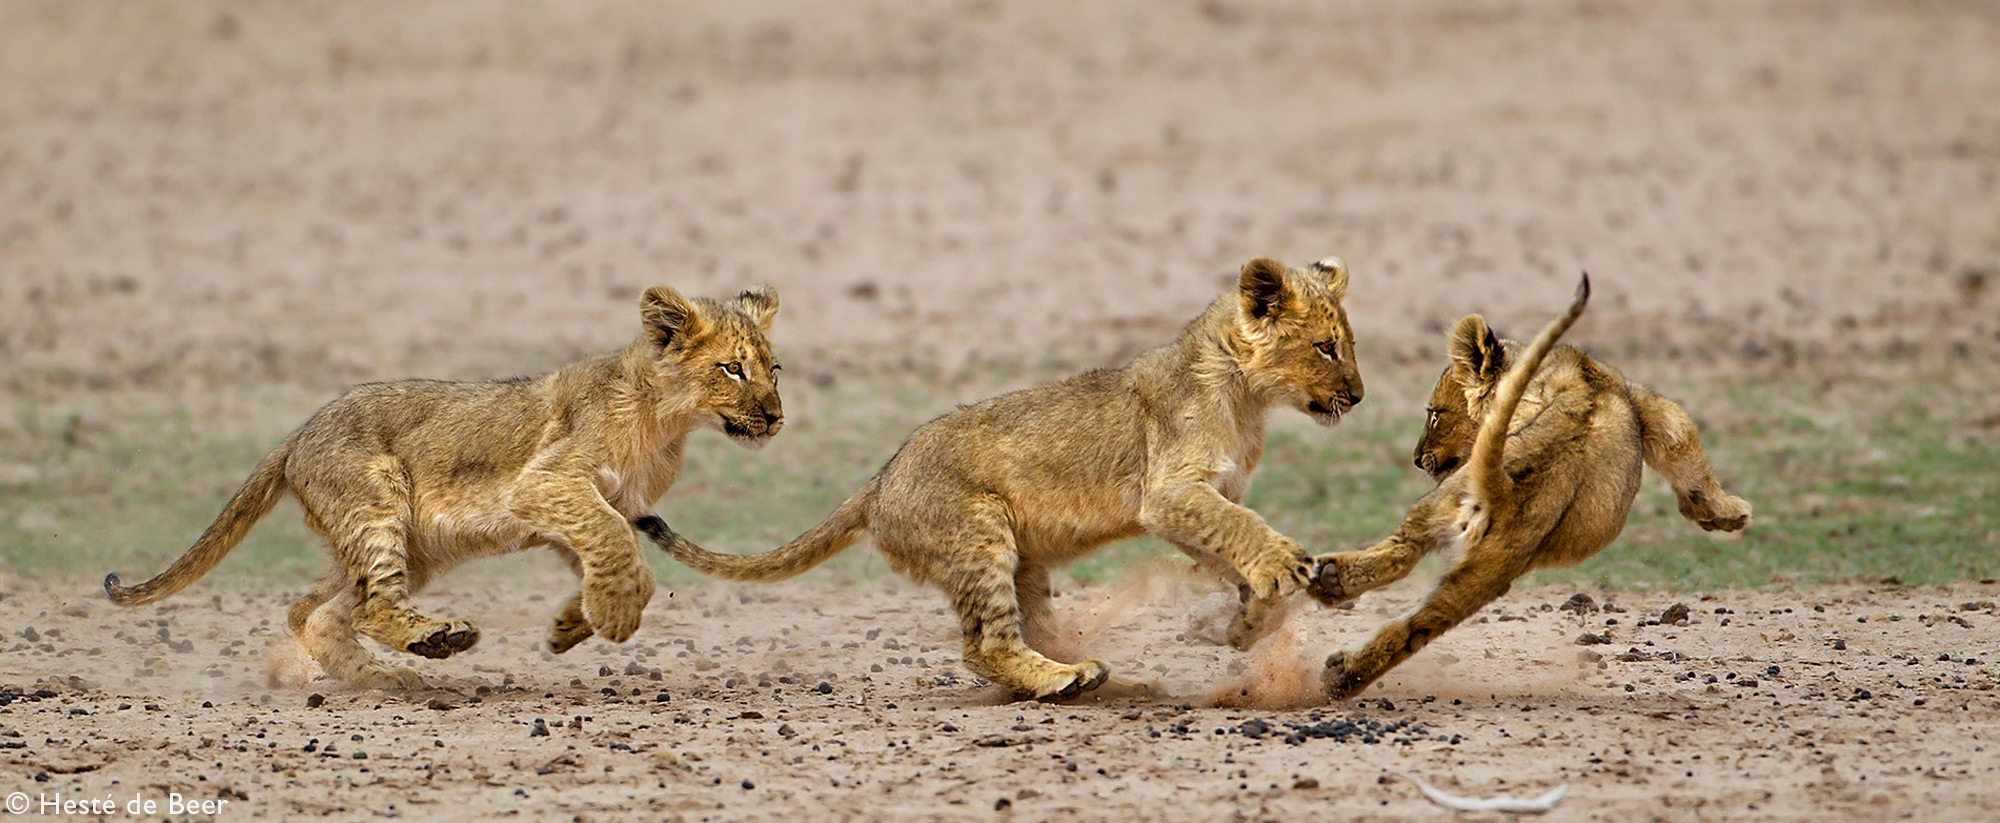 Three lions cubs running and playing with each other